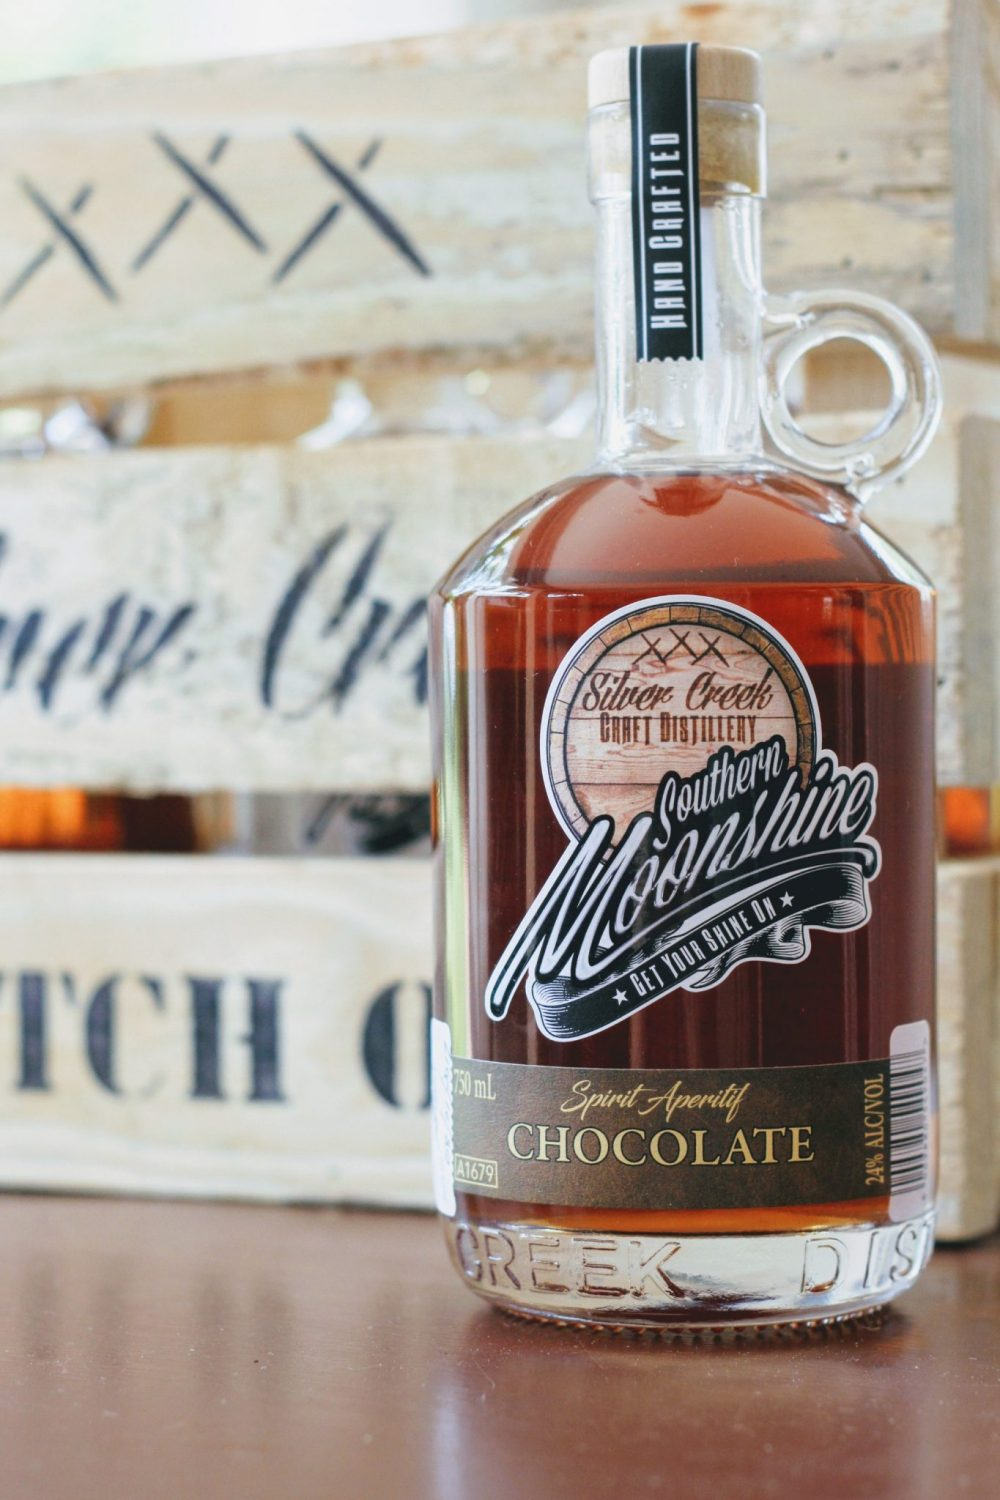 Silver Creek Moonshine Chocolate sonia cabano blog eatdrinkcapetown